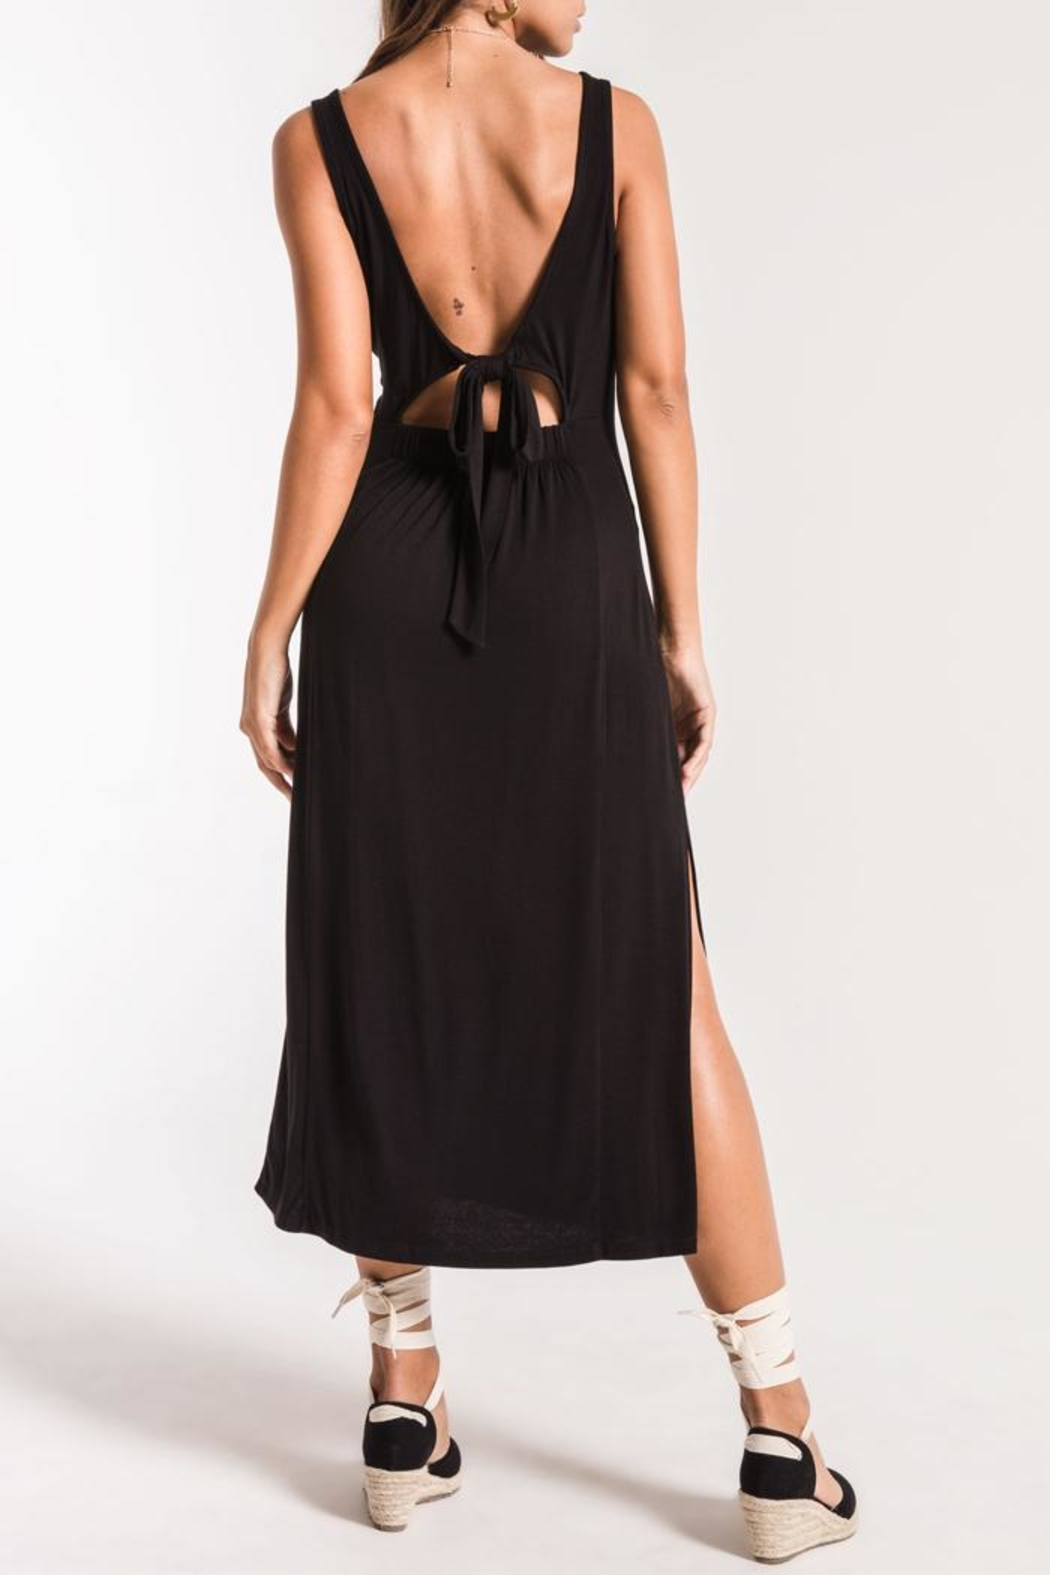 z supply Tie-Back Maxi - Back Cropped Image